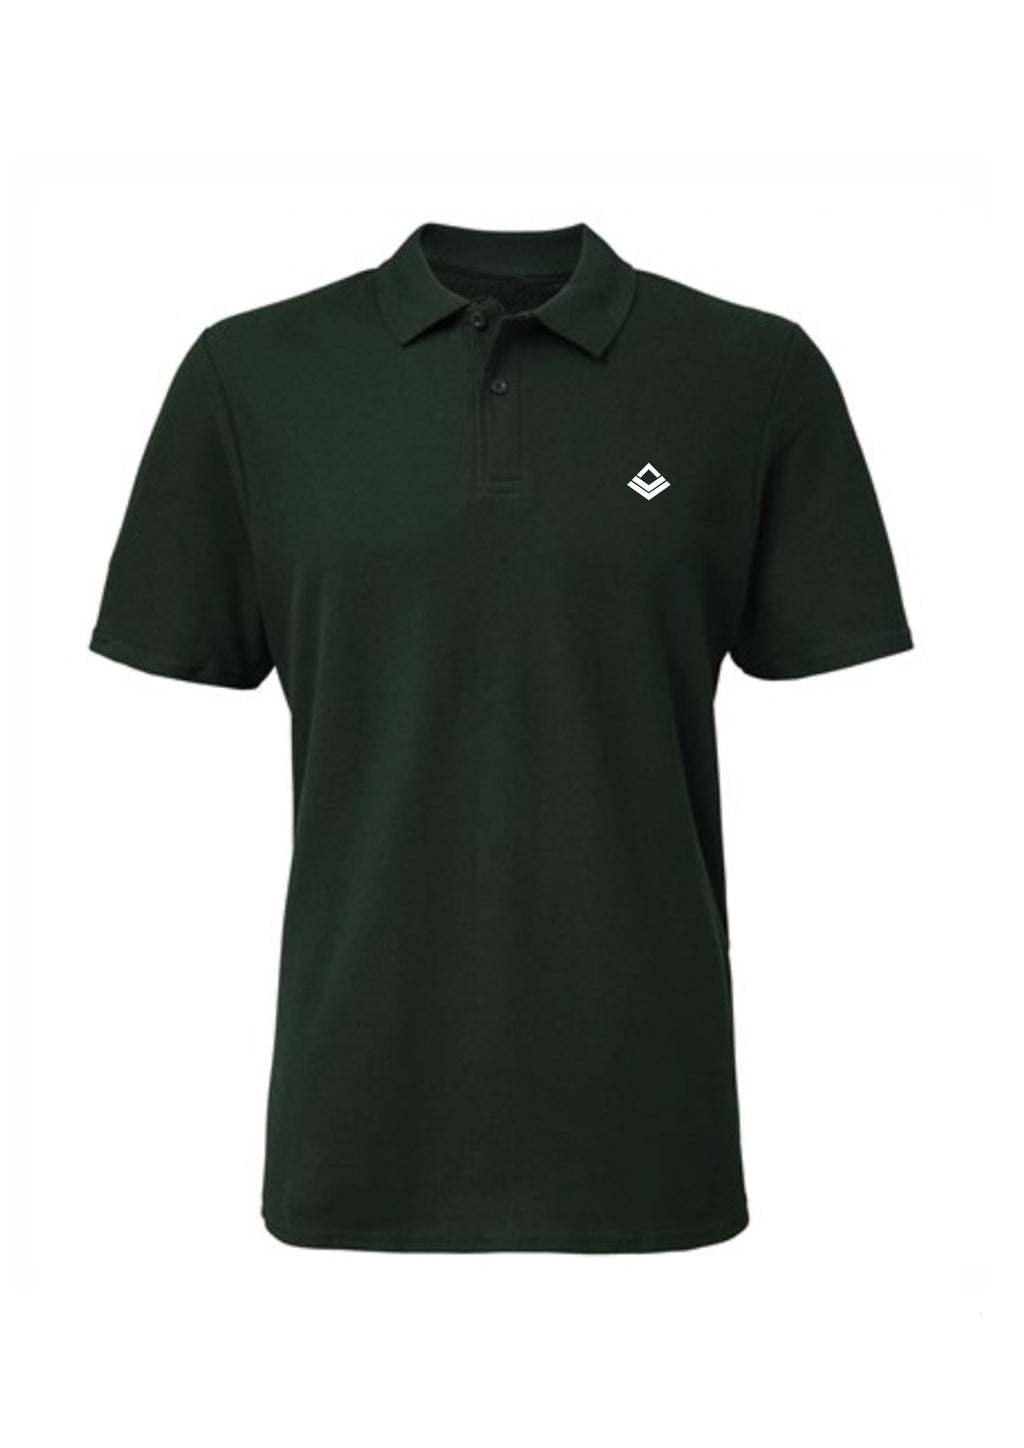 Swaggerlicious Forest Green Simple Polo Shirt with White Logo